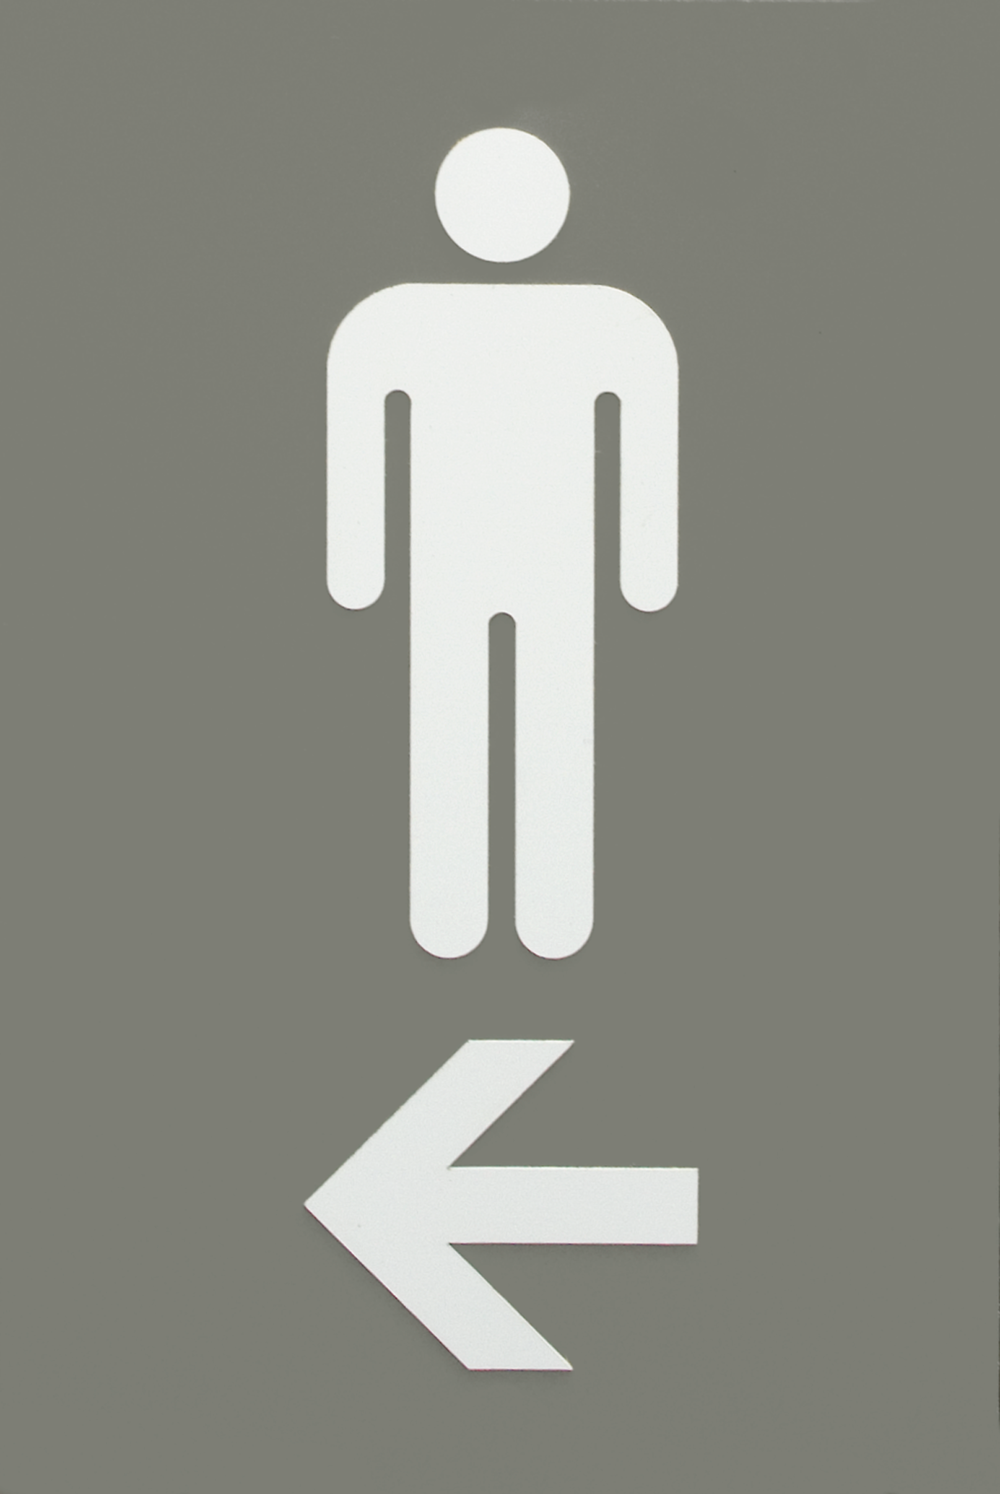 Mens Restroom Arrow.png